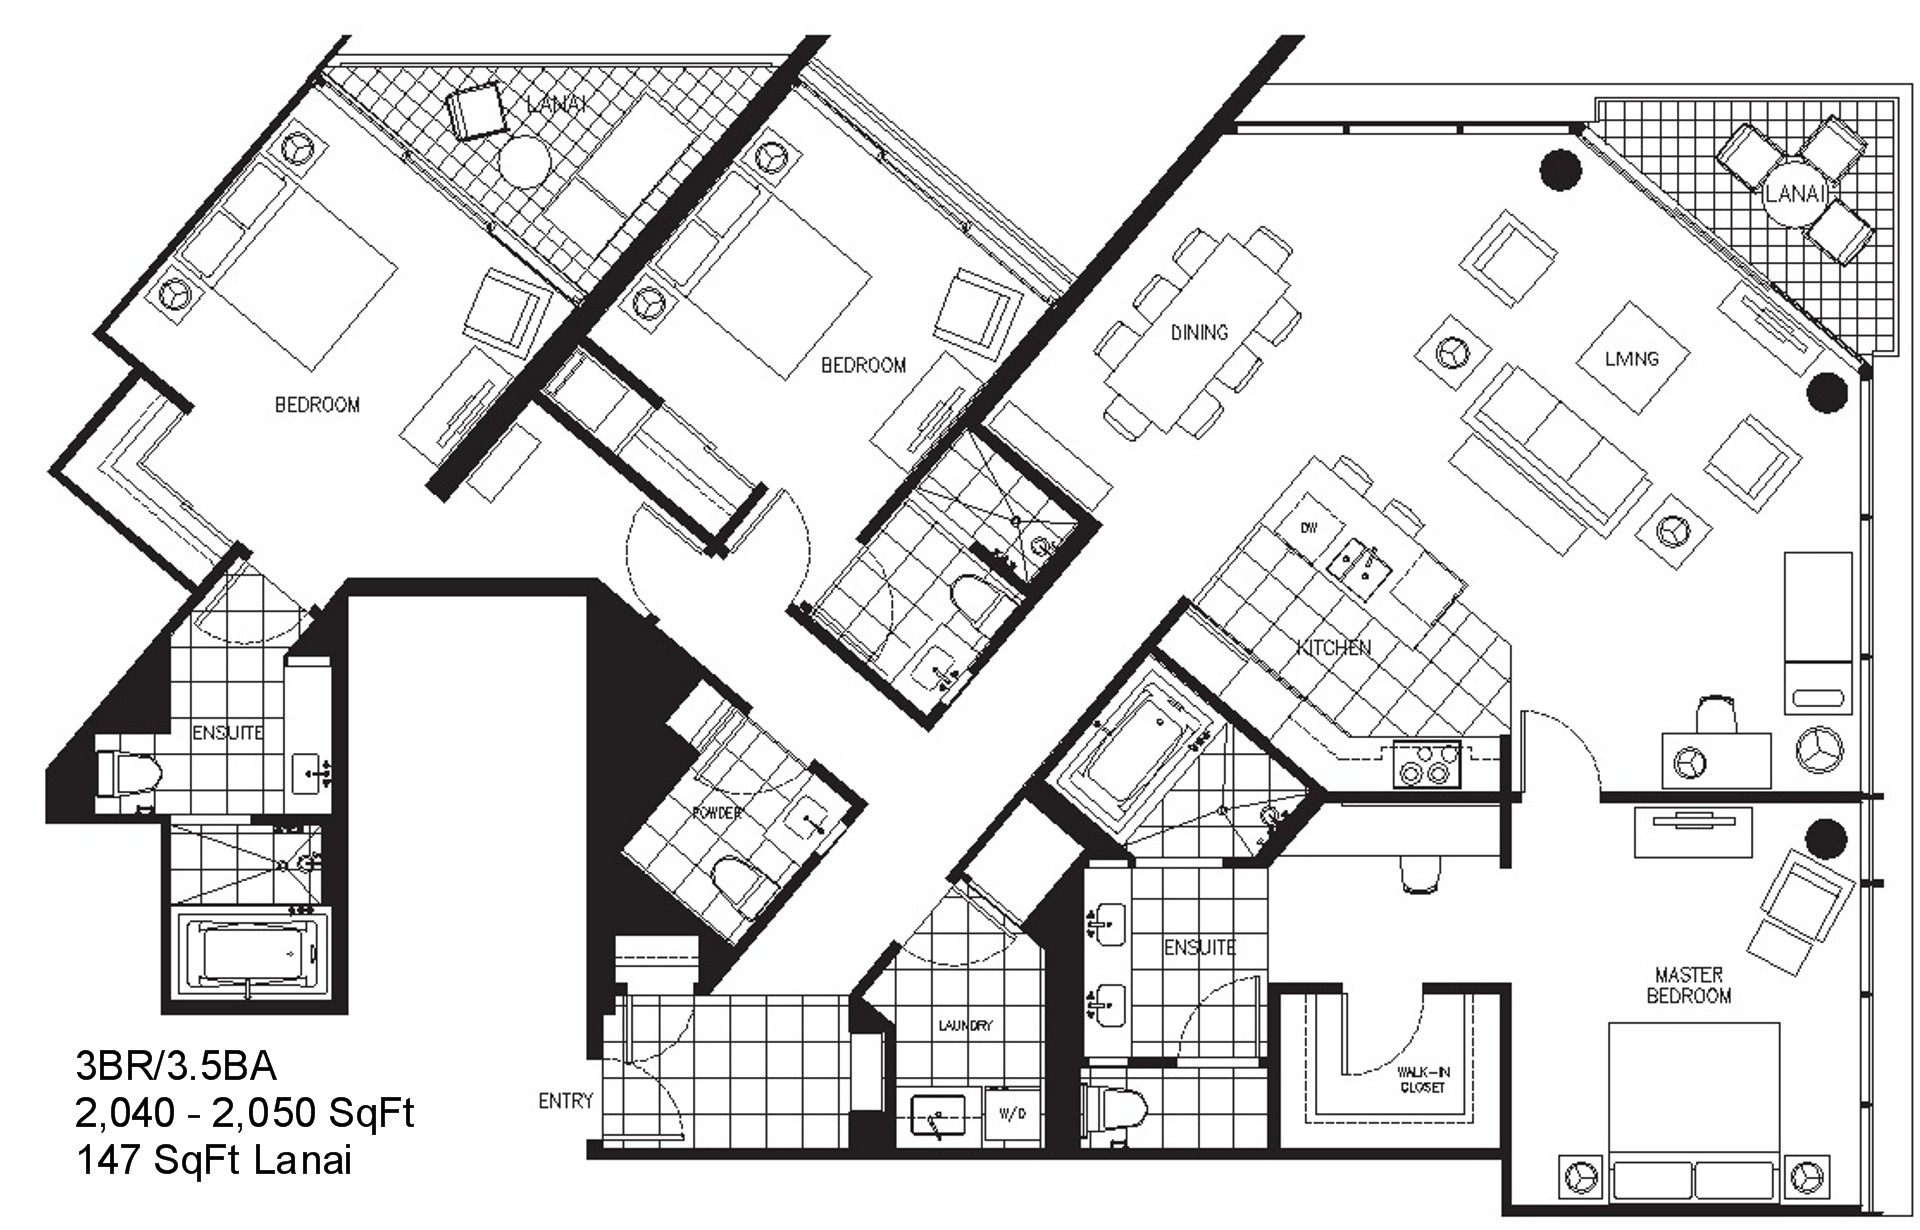 Trump Tower Waikiki Floor Plans